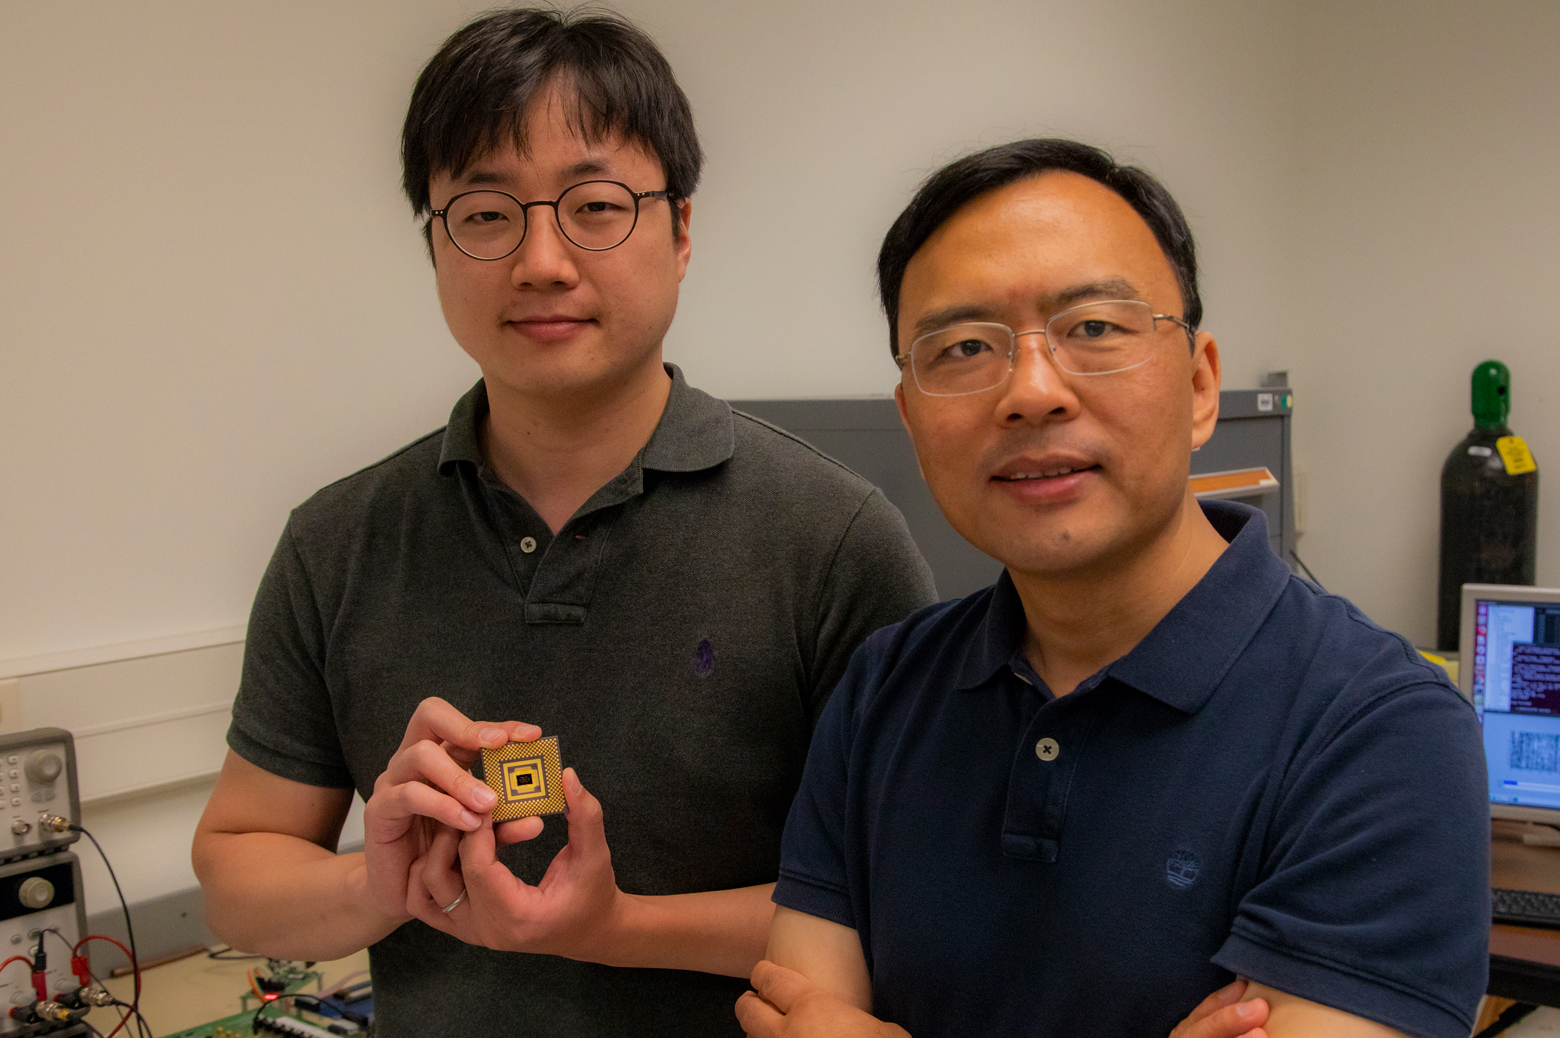 Two men, one holding a memristor array.